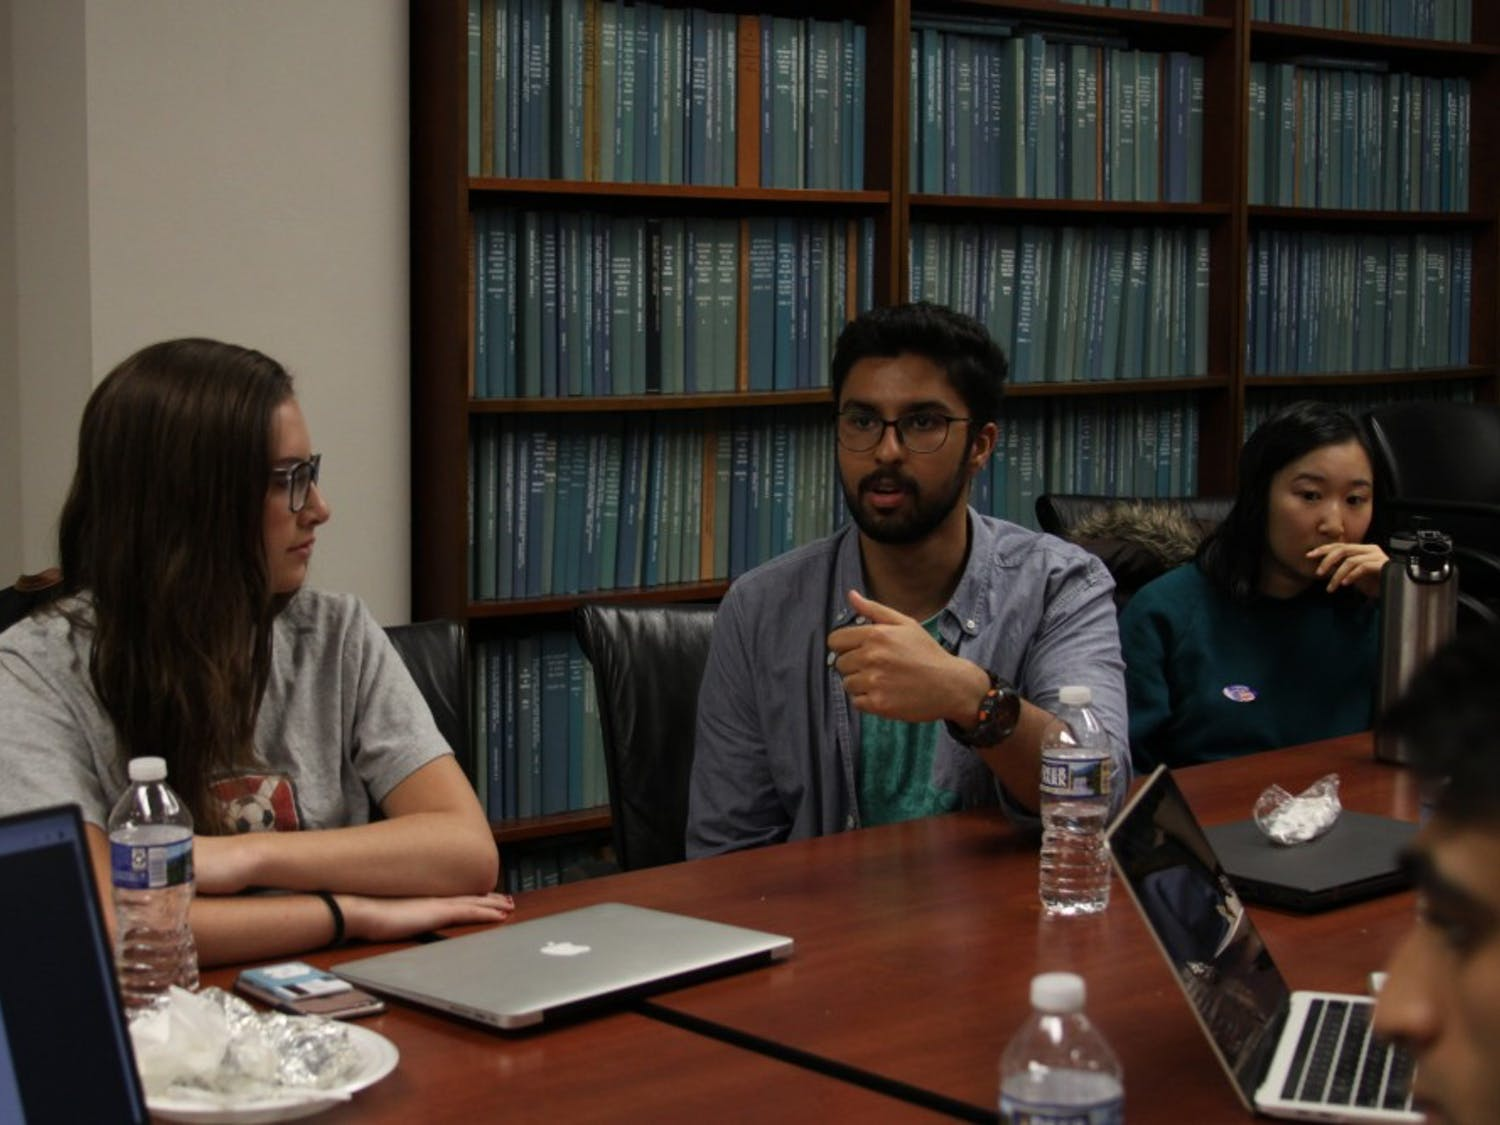 """Anamay Viswanathan, senior political science major, offers his thoughts during a group discussion at a meeting with the """"Tolerance in the Marketplace of Ideas"""" research fellowship in Davie Hall on Tuesday, Nov. 6, 2018."""